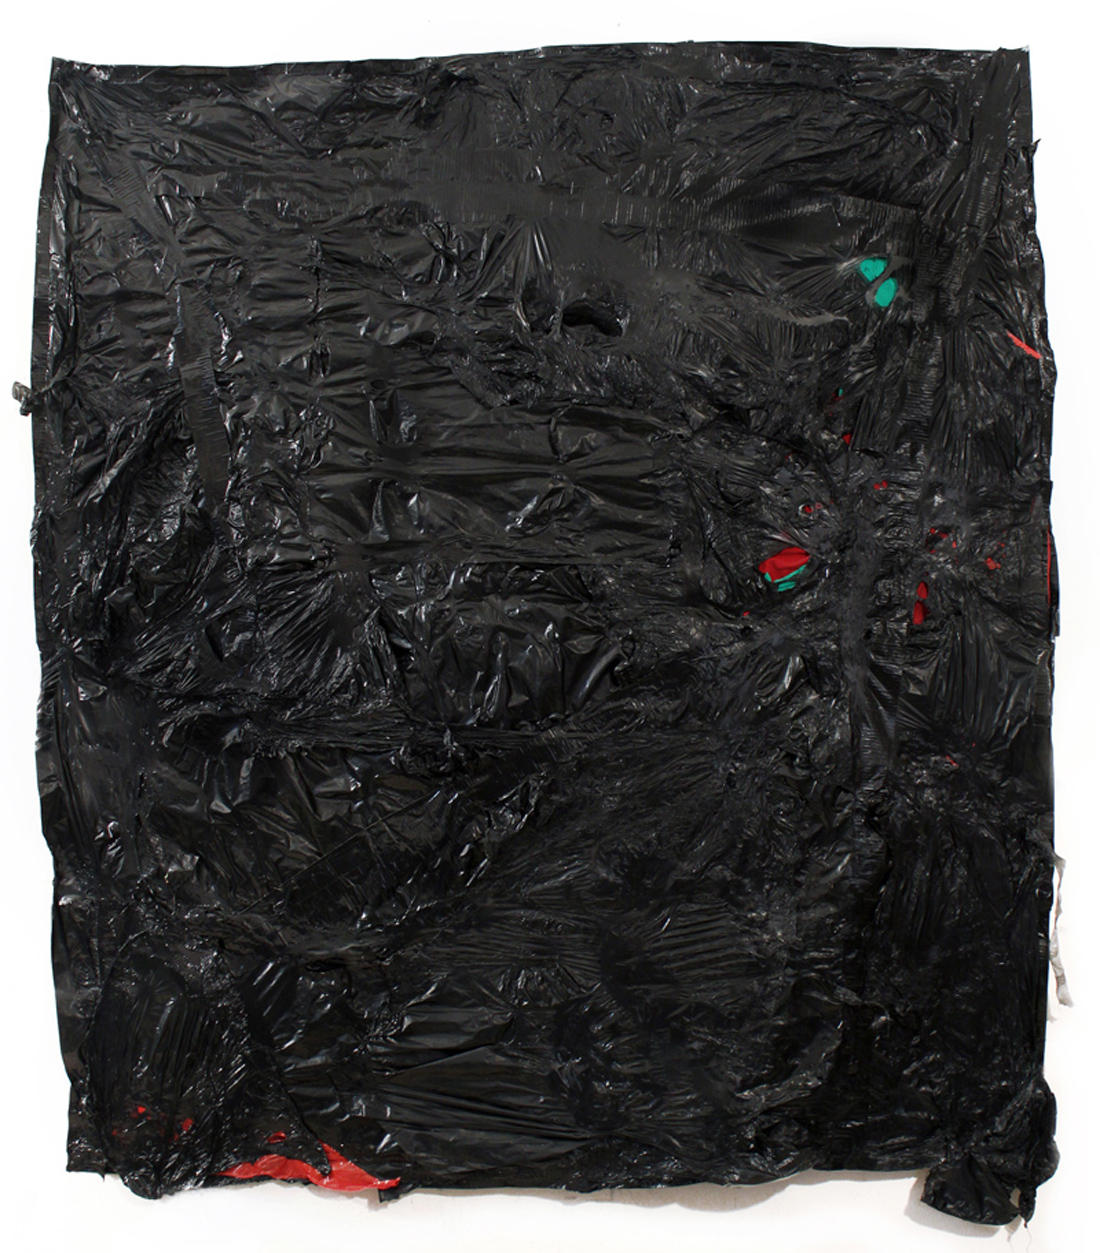 Nathaniel Donnet, Ed Dwight, 2014, plastic, clothing, duct tape, paper, 57 x 64 inches